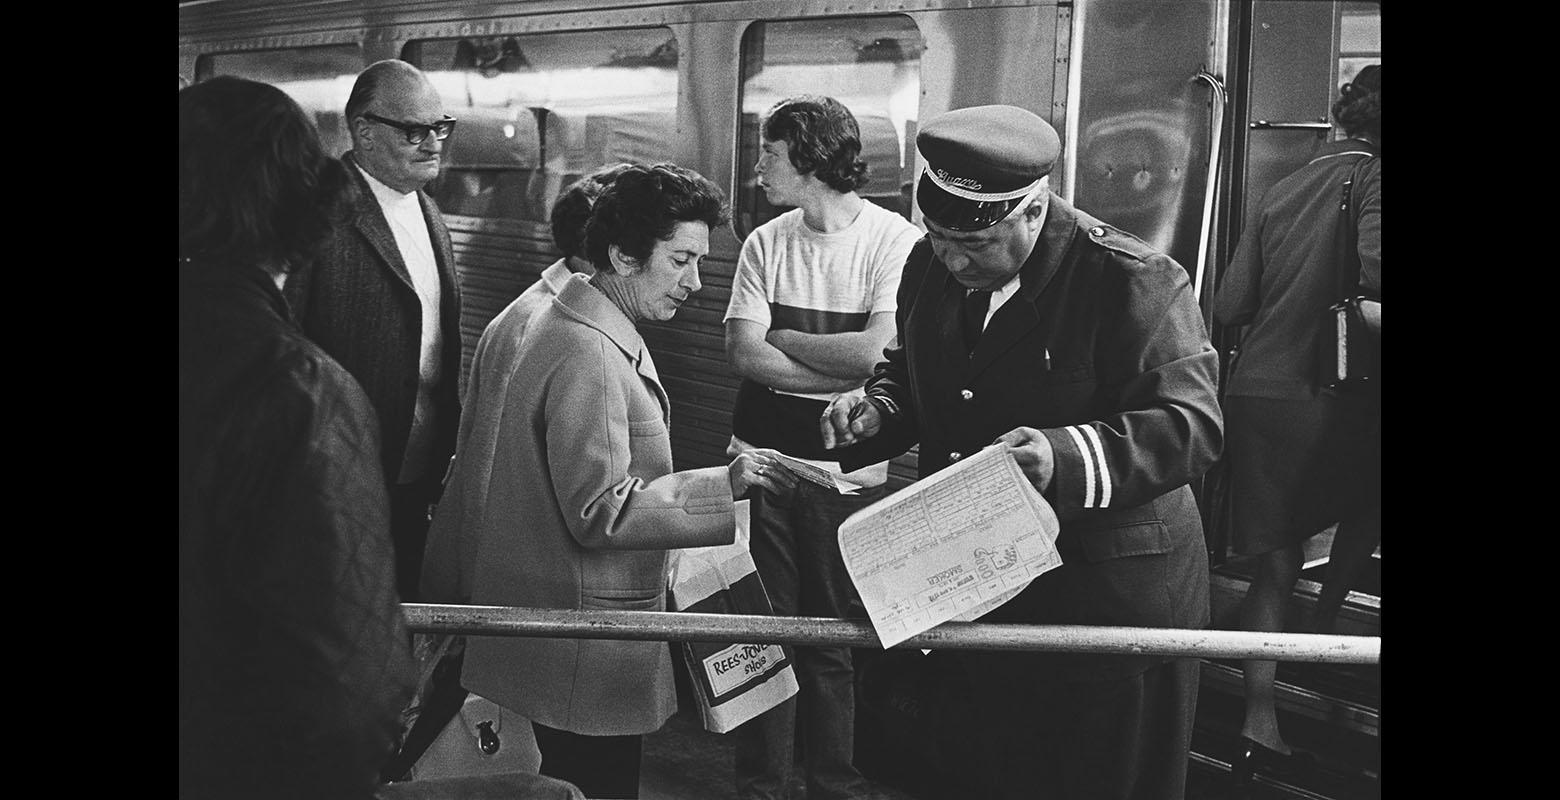 A man checks a ticket of a woman at a train station